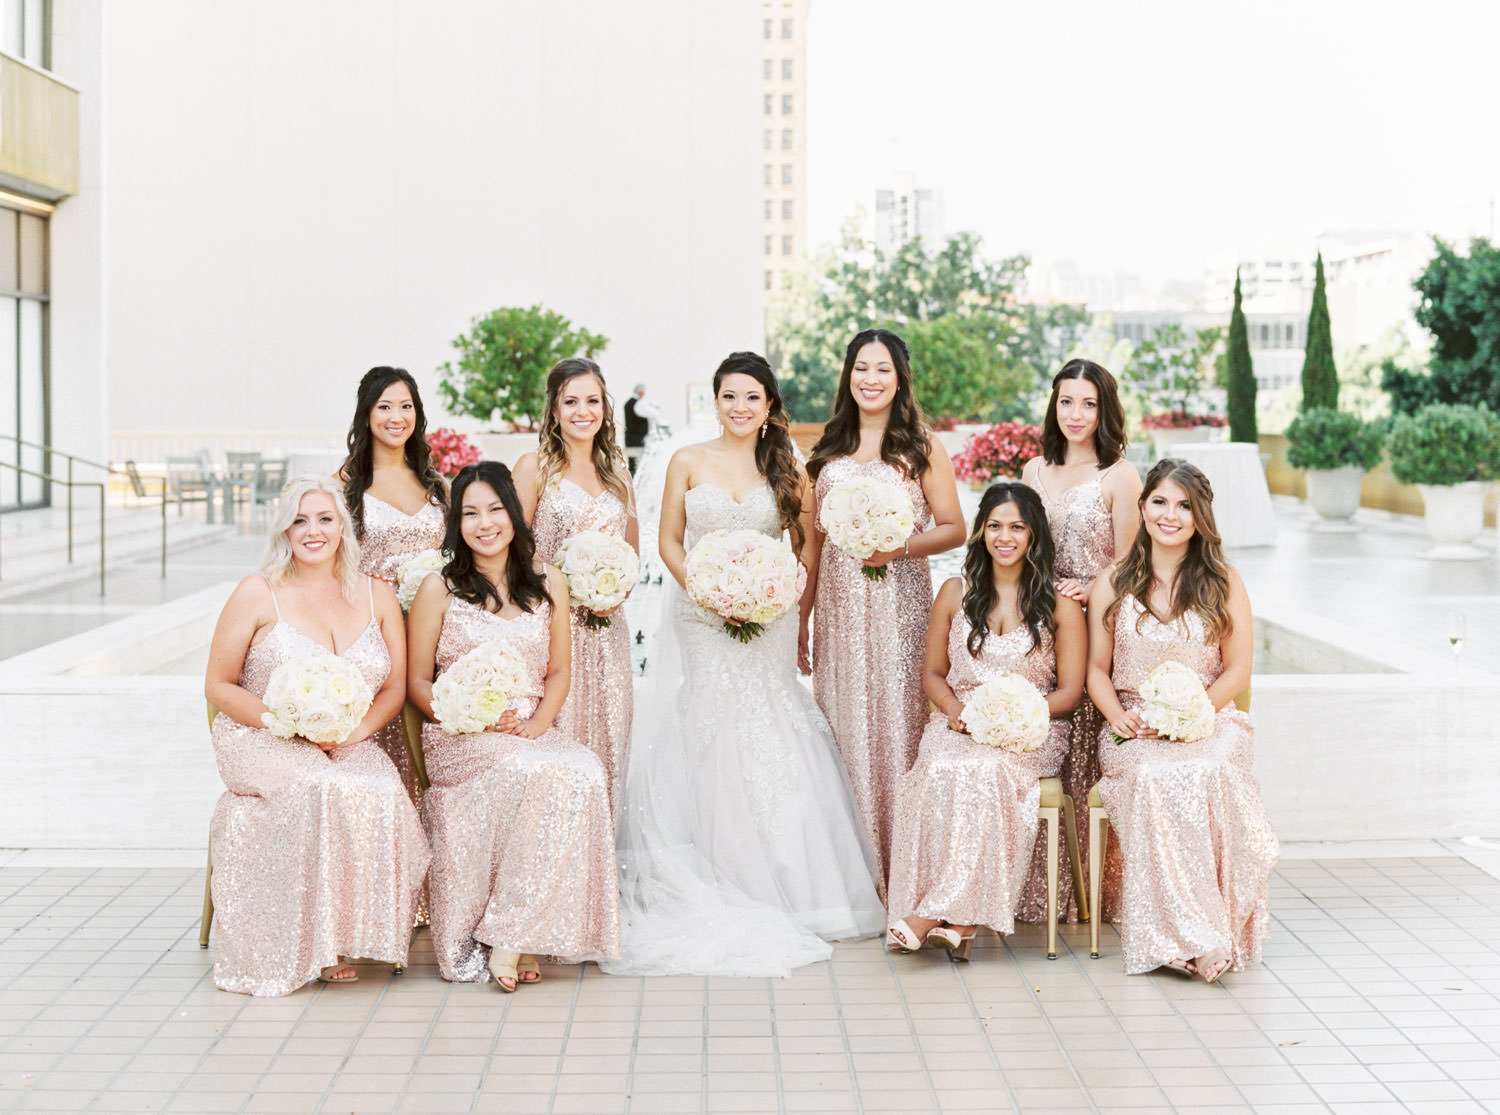 Bridal party portrait with chairs, Westgate Hotel Wedding in Downtown San Diego, film by Cavin Elizabeth Photography